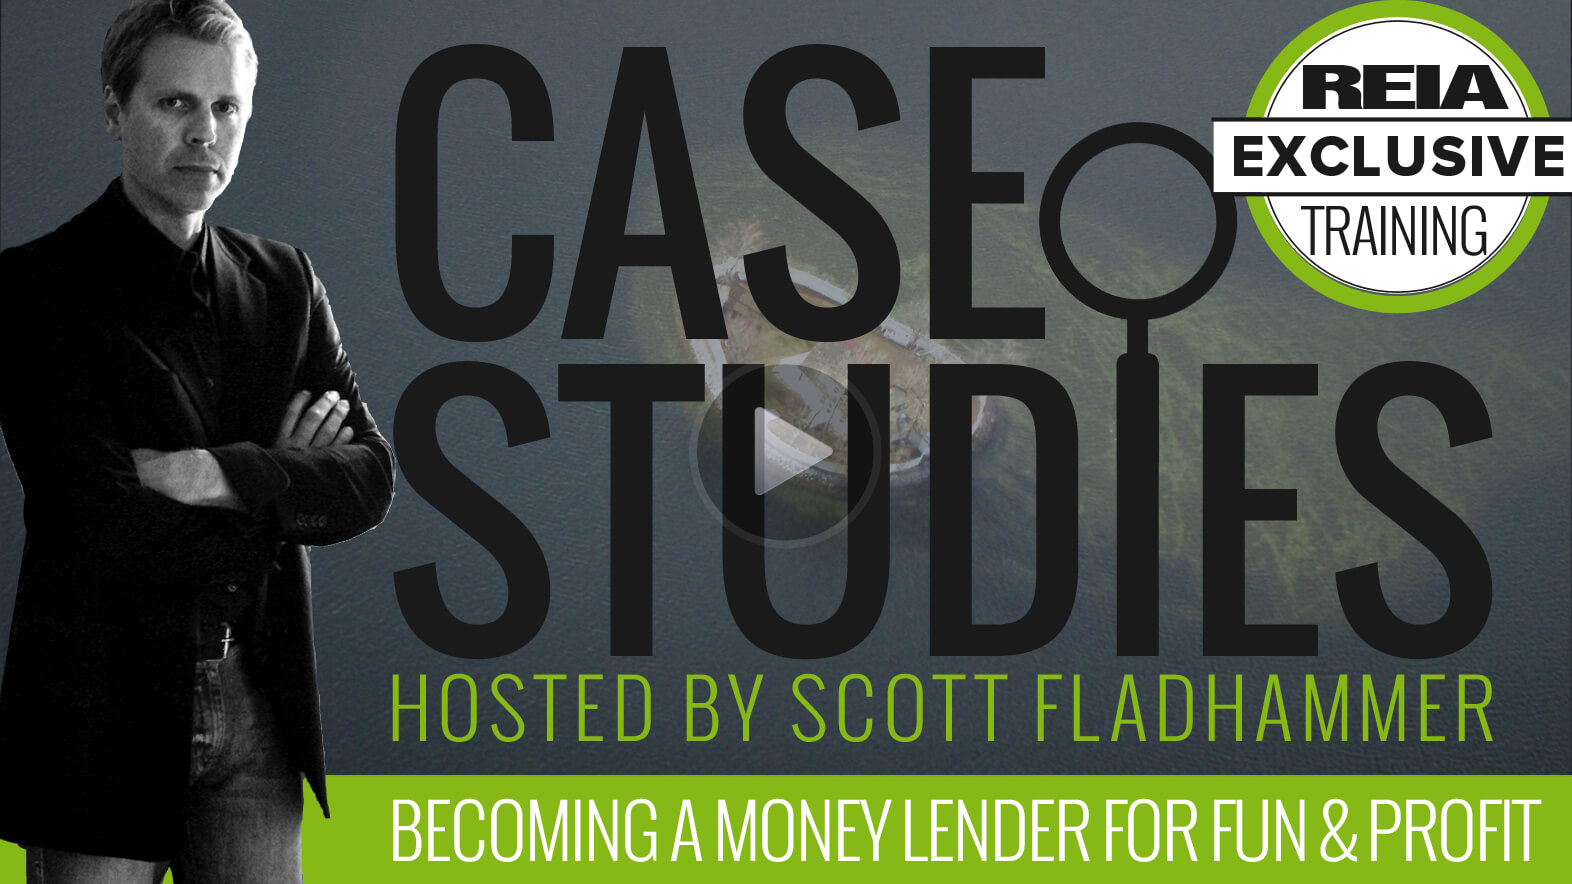 Scott FladHammer funds real estate deals and lends to Real estate investors to increase profits for higher rates of returns.